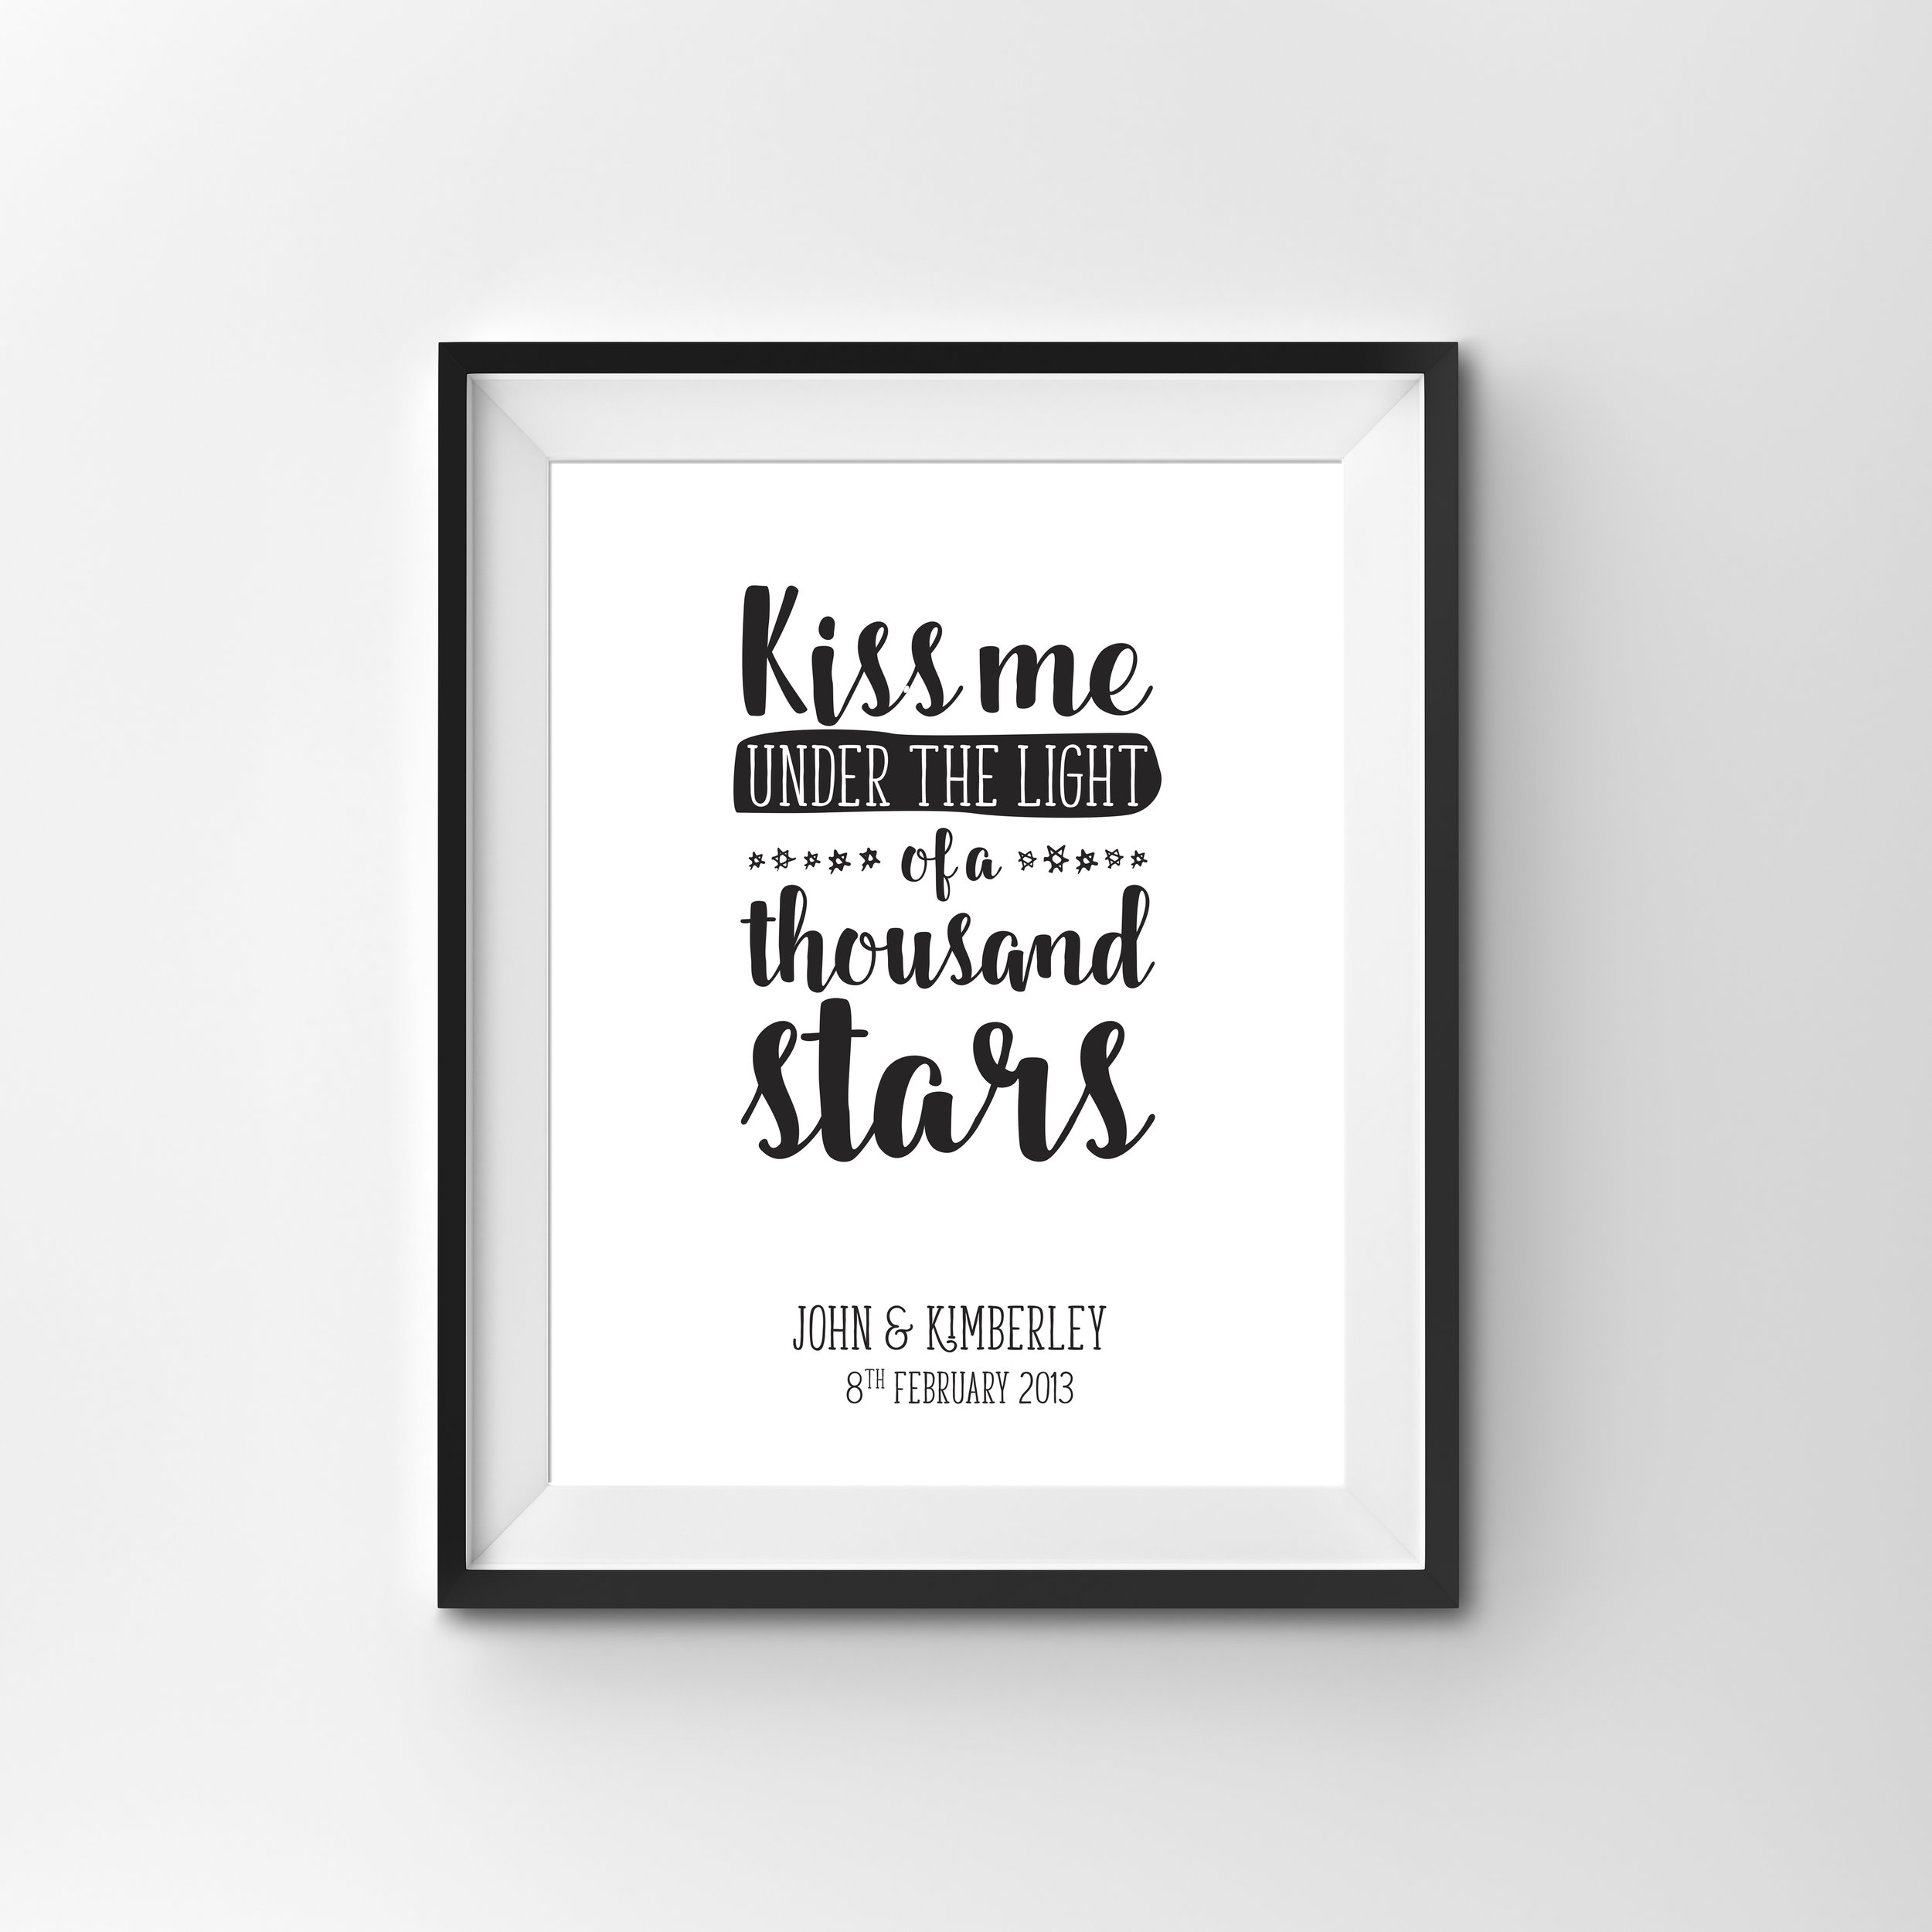 'OUR SONG' PRINT  BLACK & WHITE PRINT, 250gsm CARD STOCK  A4 $45  A song lyric or quote in flowing script font personalised with a couple's name and significant date